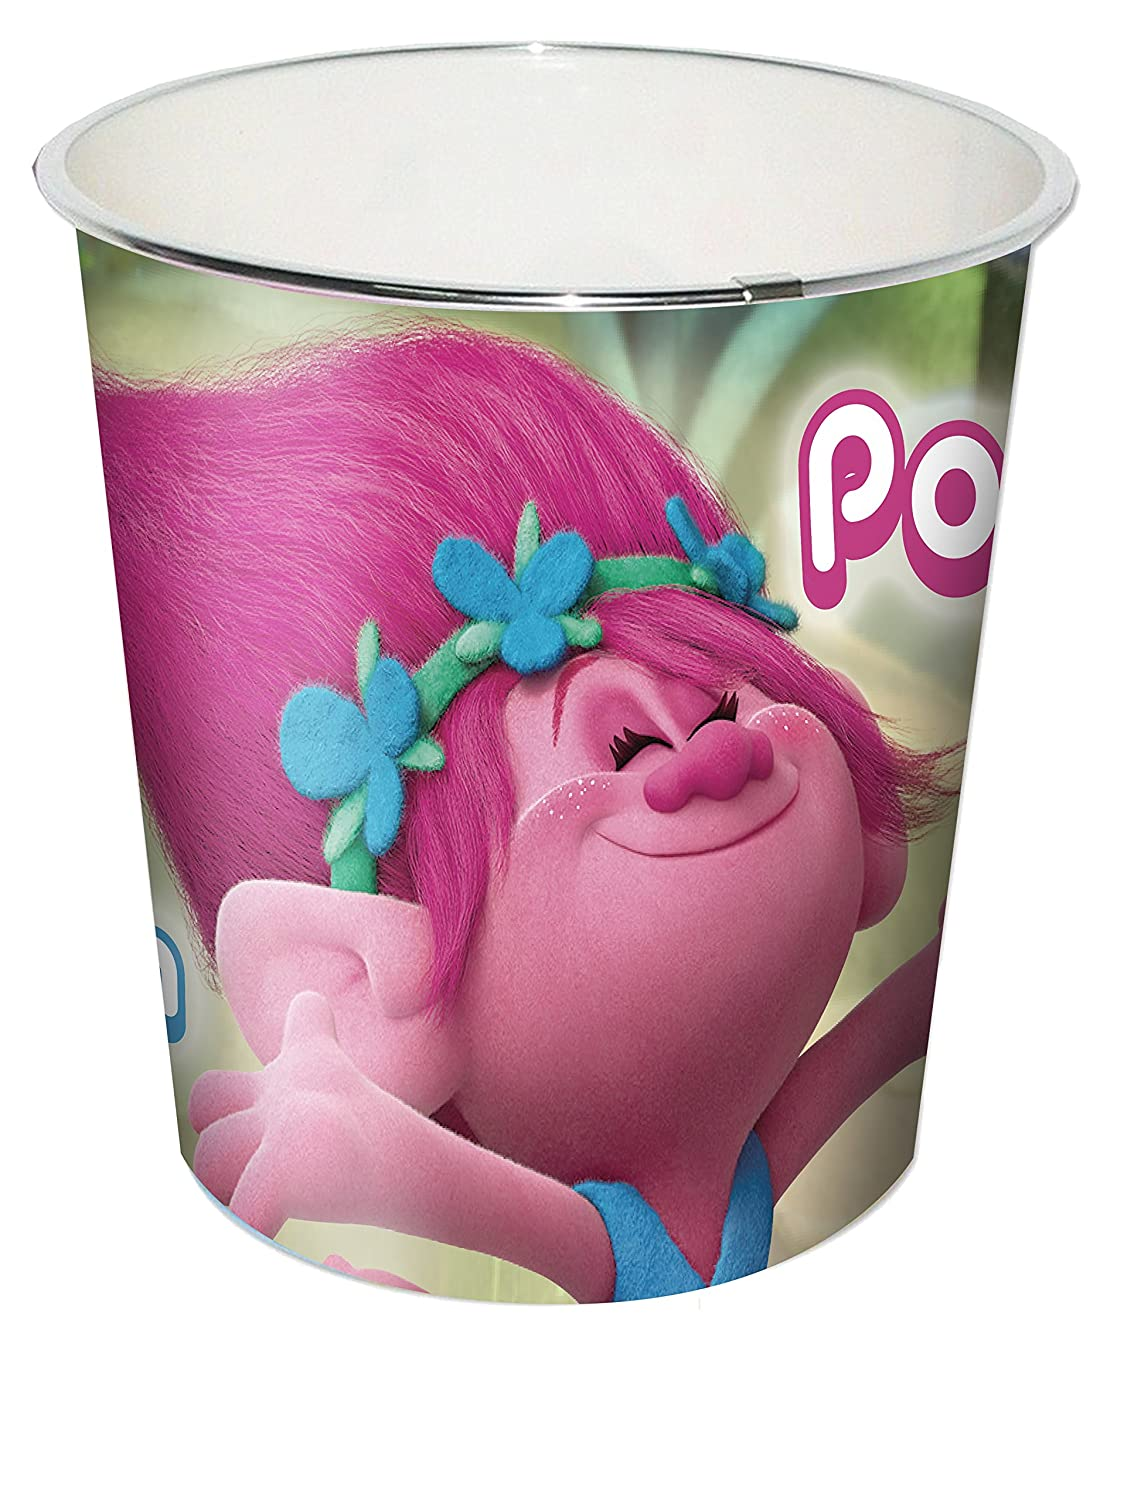 Trolls – Pattumiera in plastica, Kids tr17009